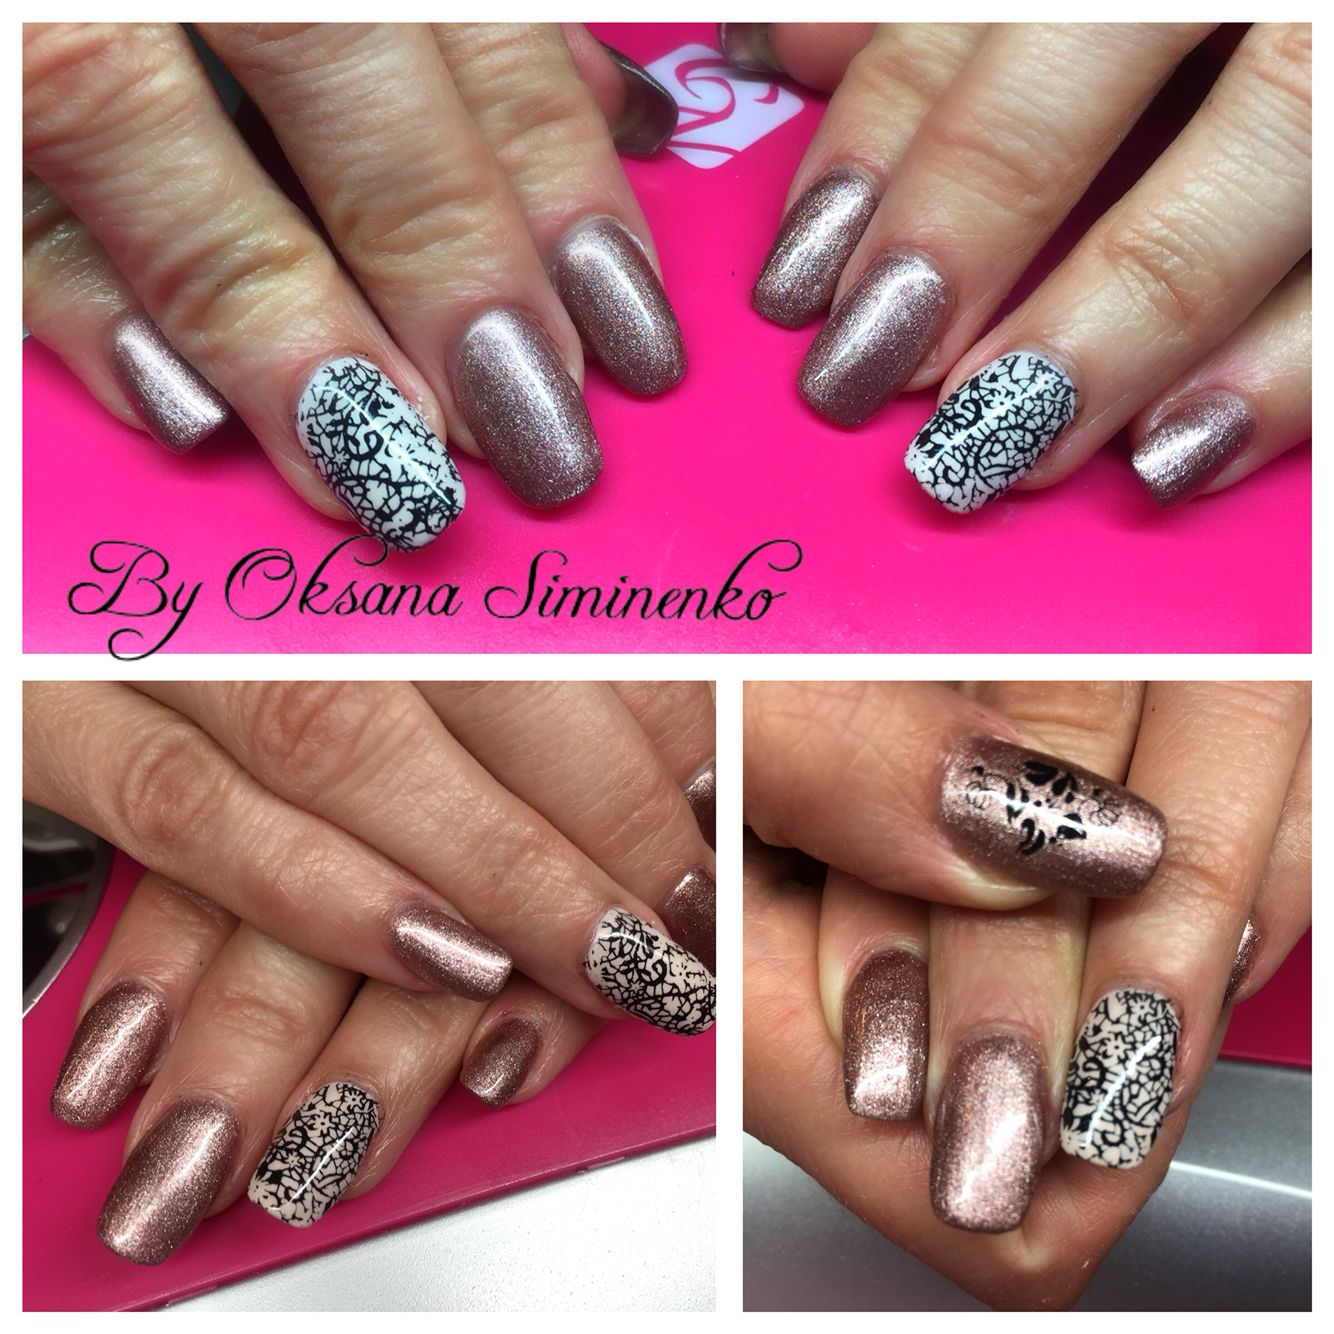 Gel Refill With Rose Mani Q Polish And Printing Plates